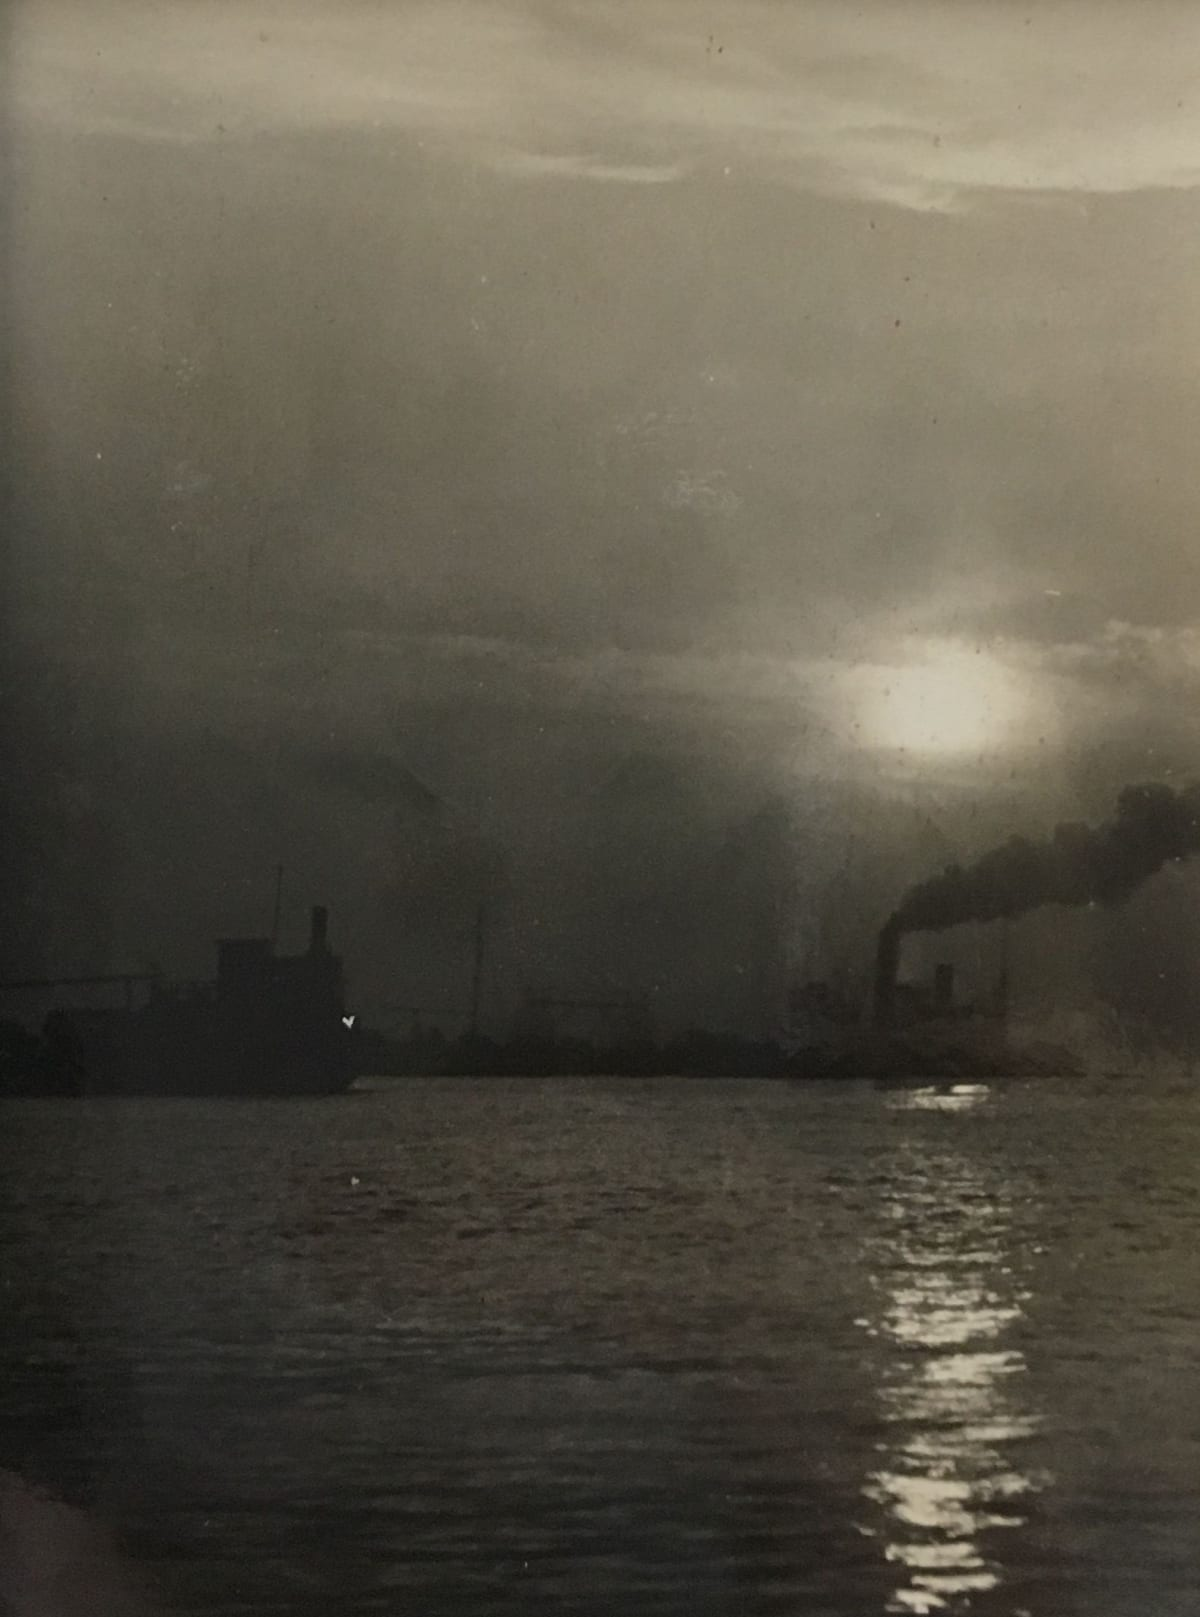 Fred Zinnemann Untitled [steamboat], n.d. Vintage gelatin silver print 3 1/2 x 2 5/8 inches